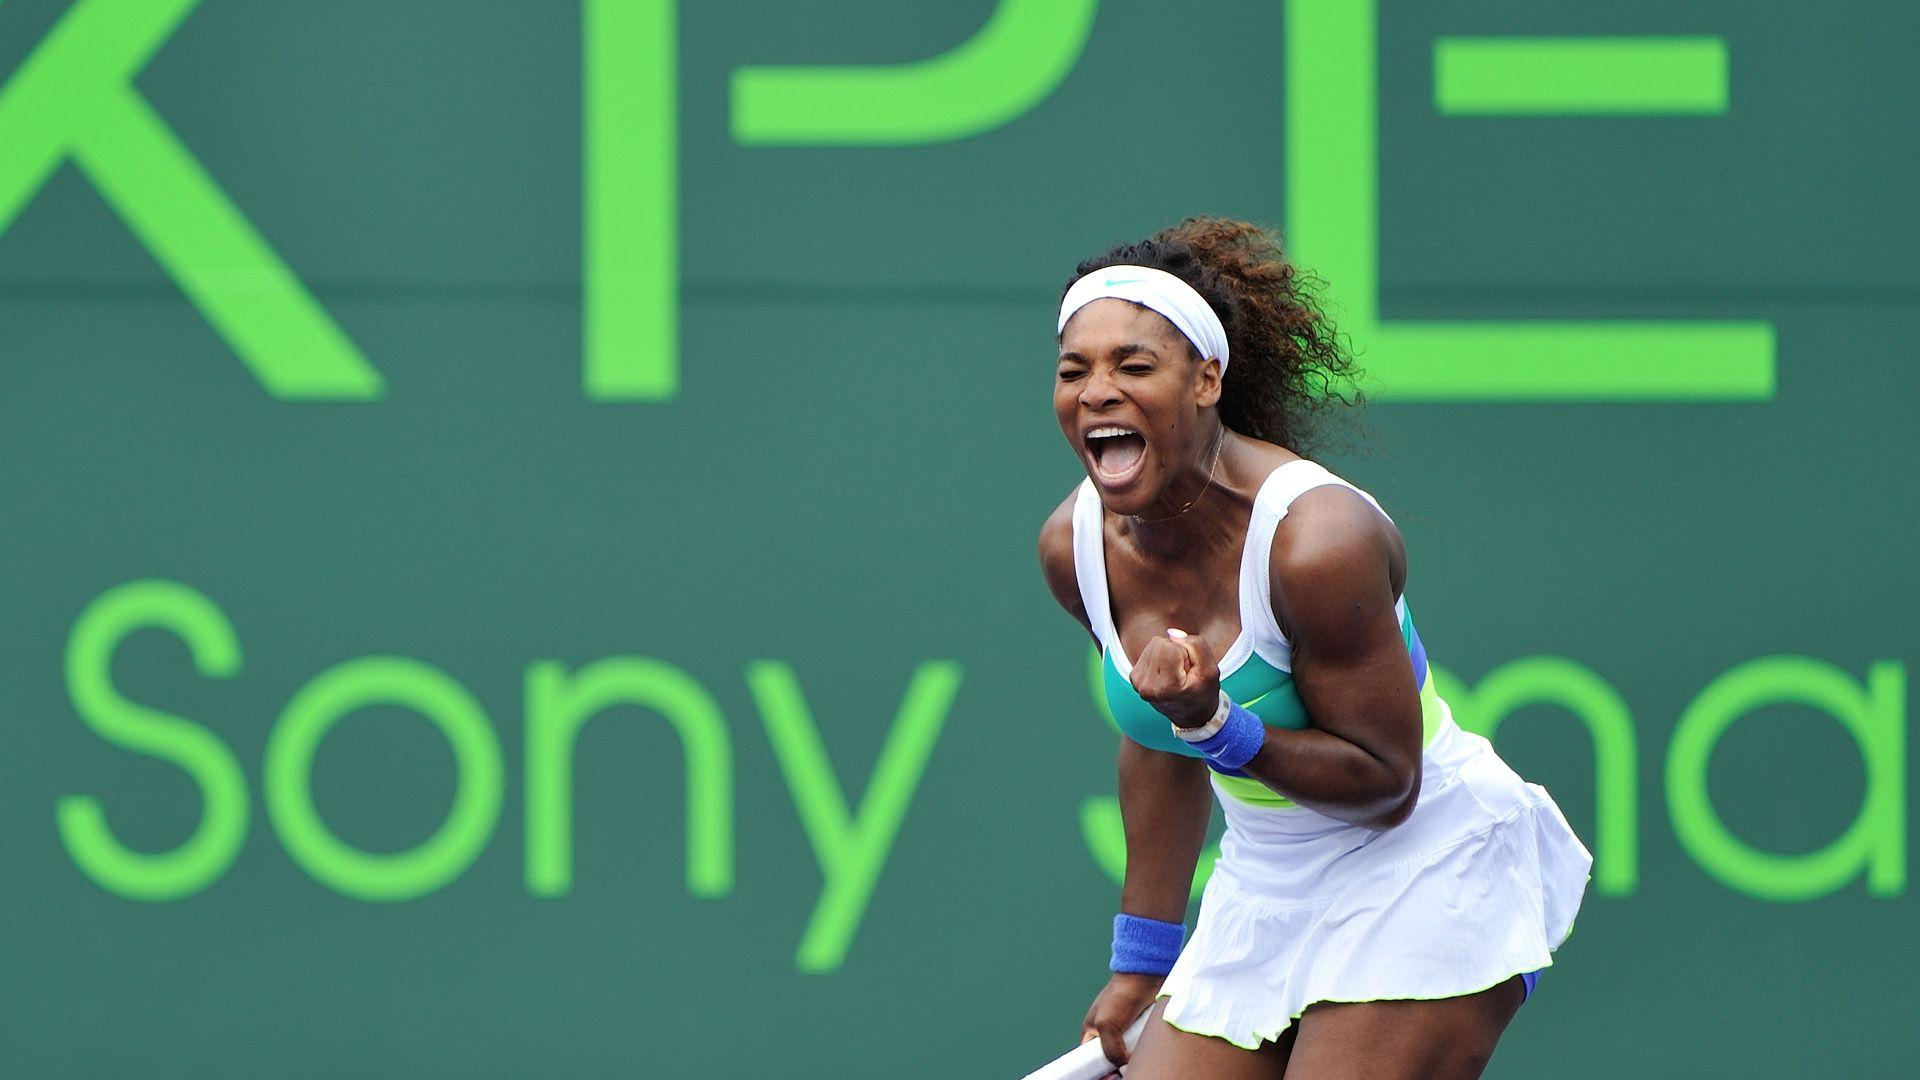 magnificent-serena-williams-wallpapers | Serena Williams HD Images ...